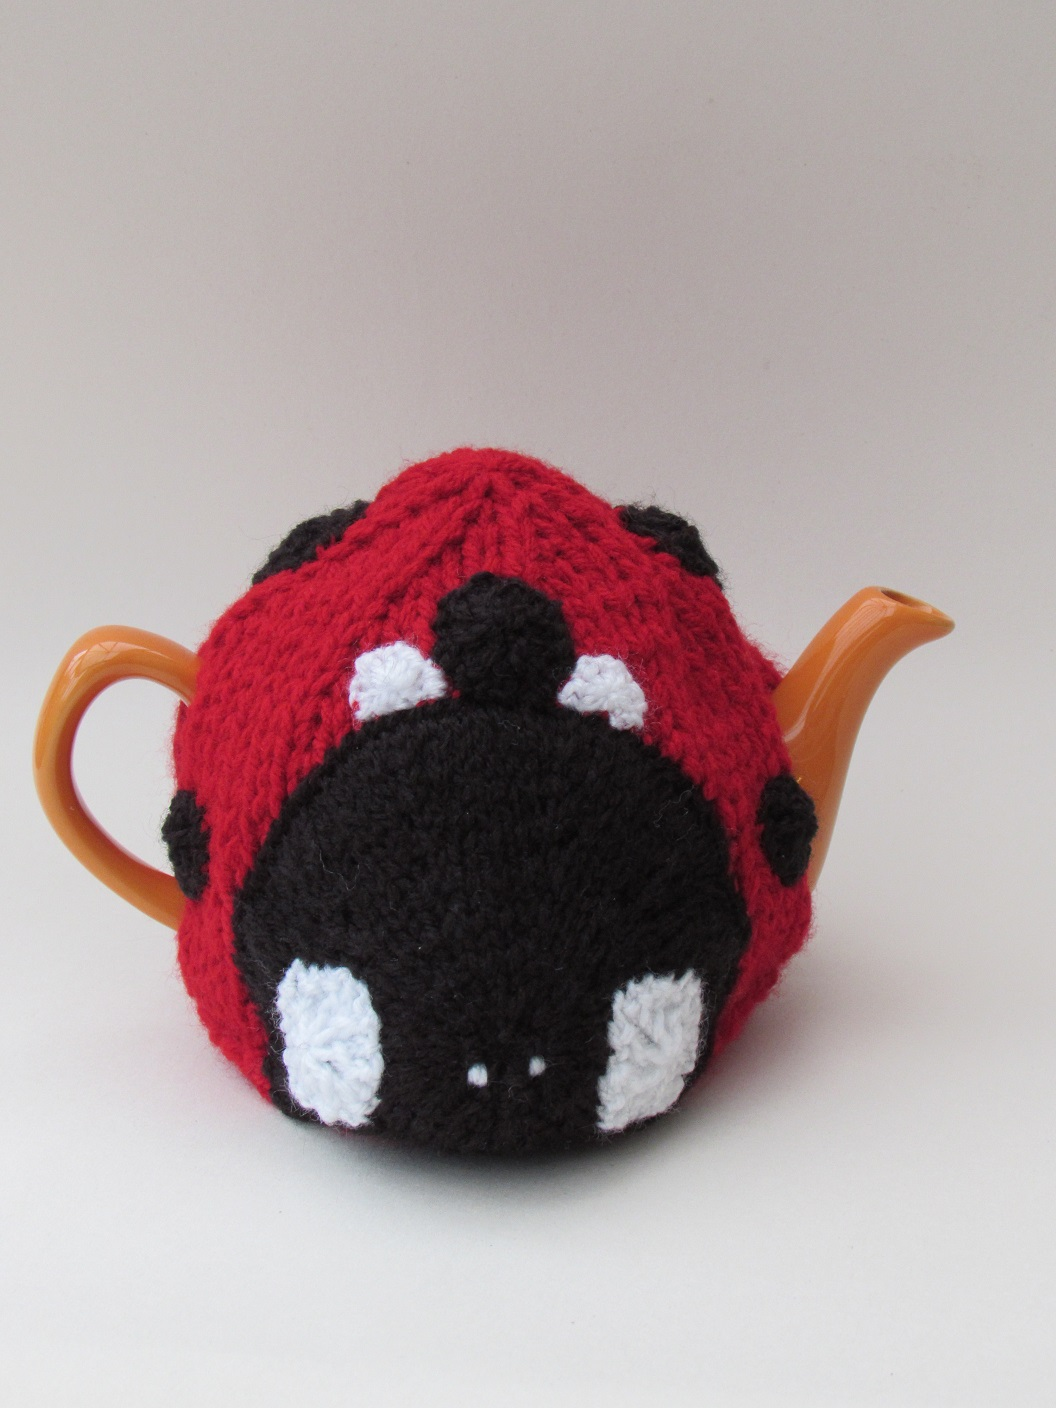 Ladybird knitting pattern